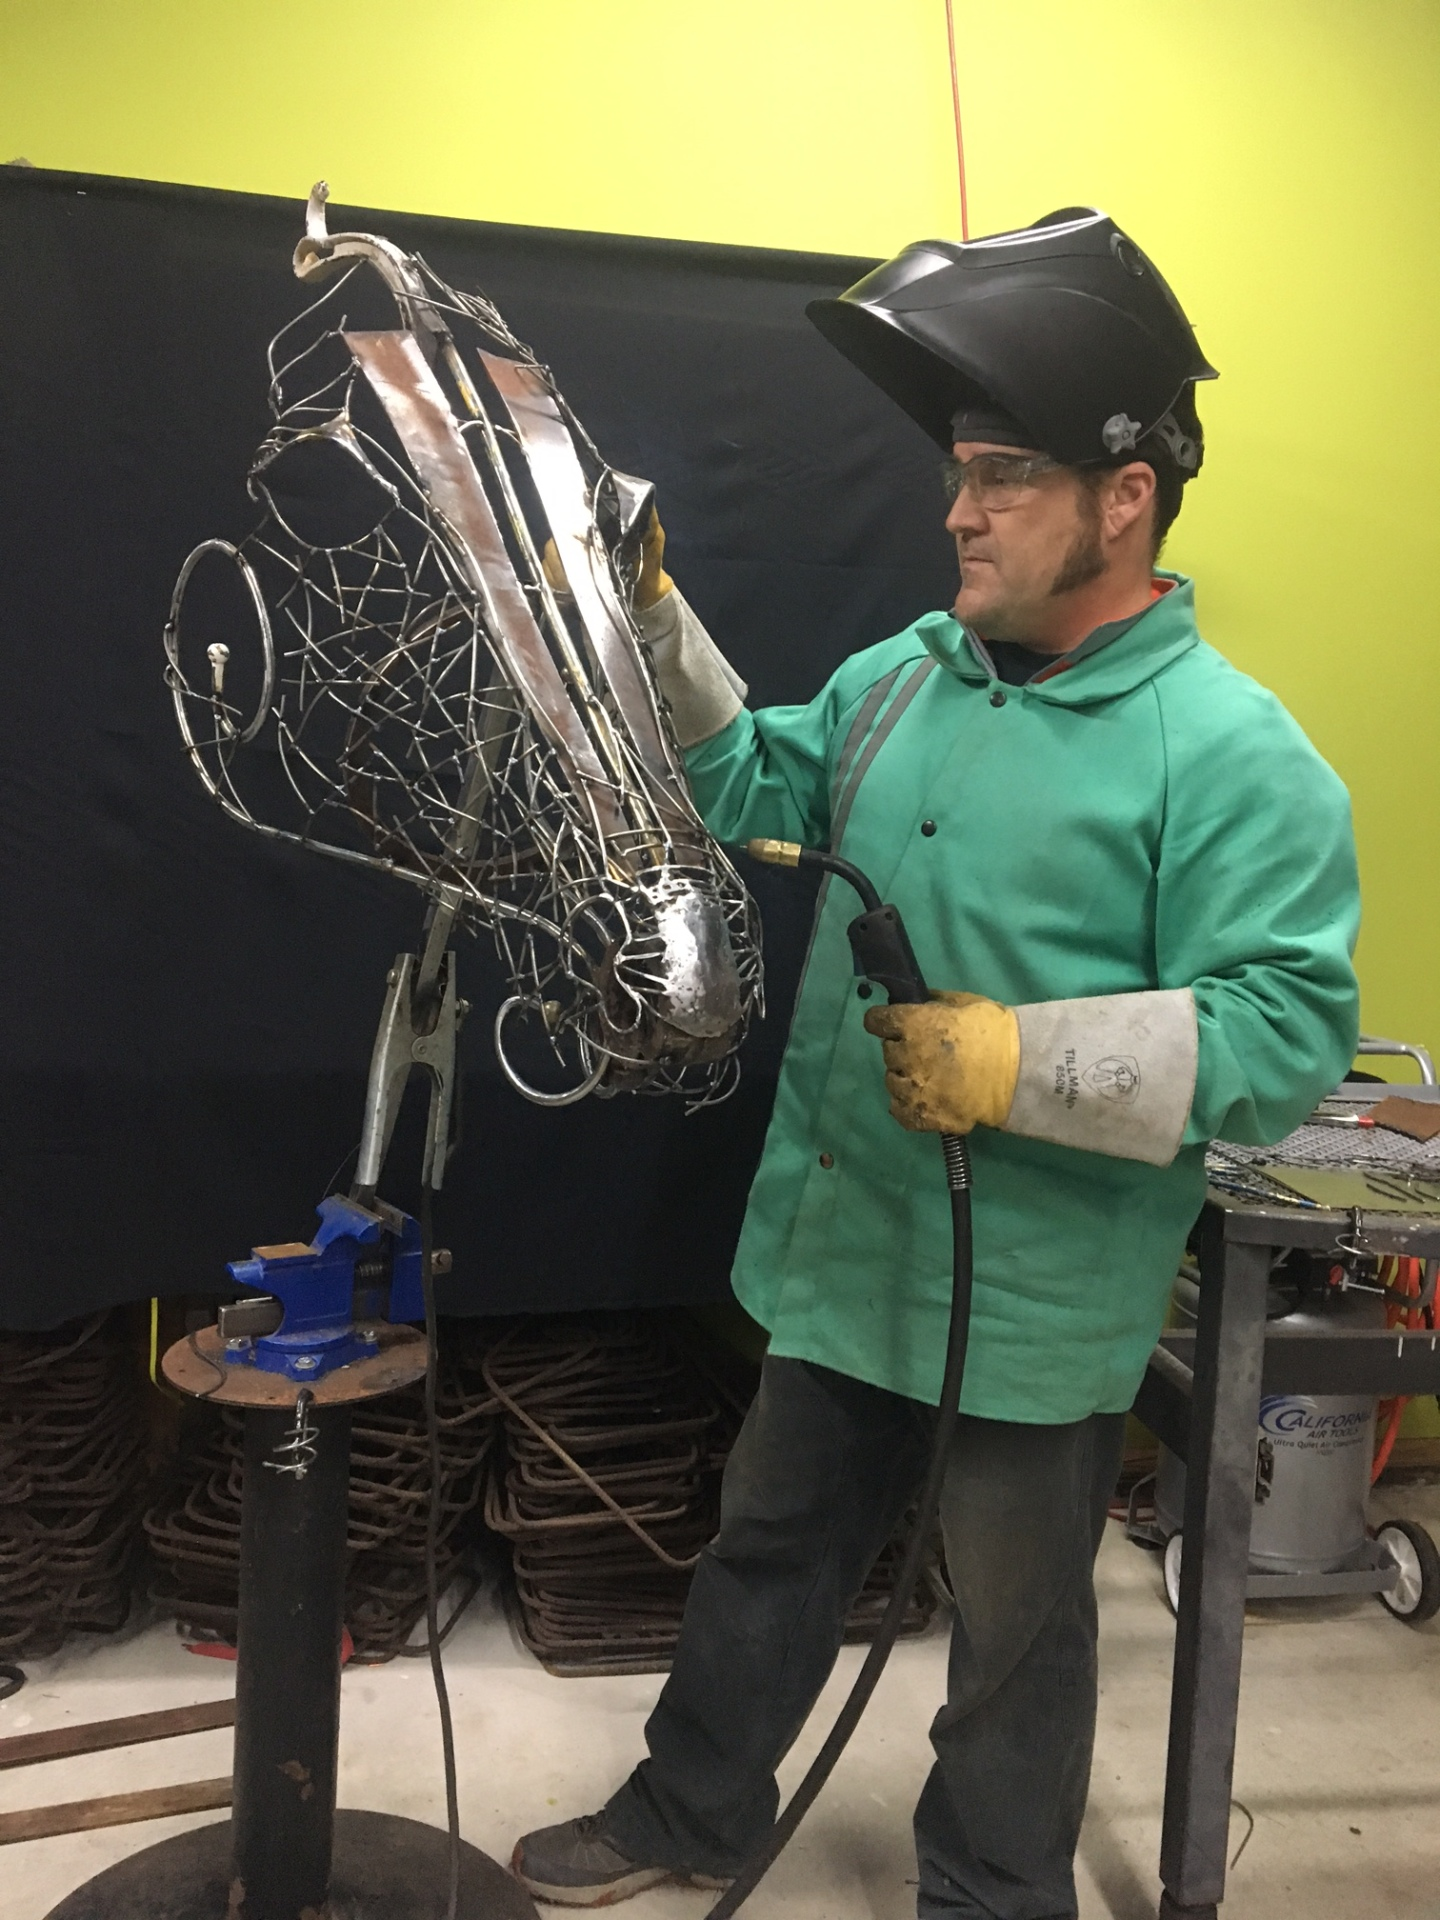 Mig welding, sculpture of a horse